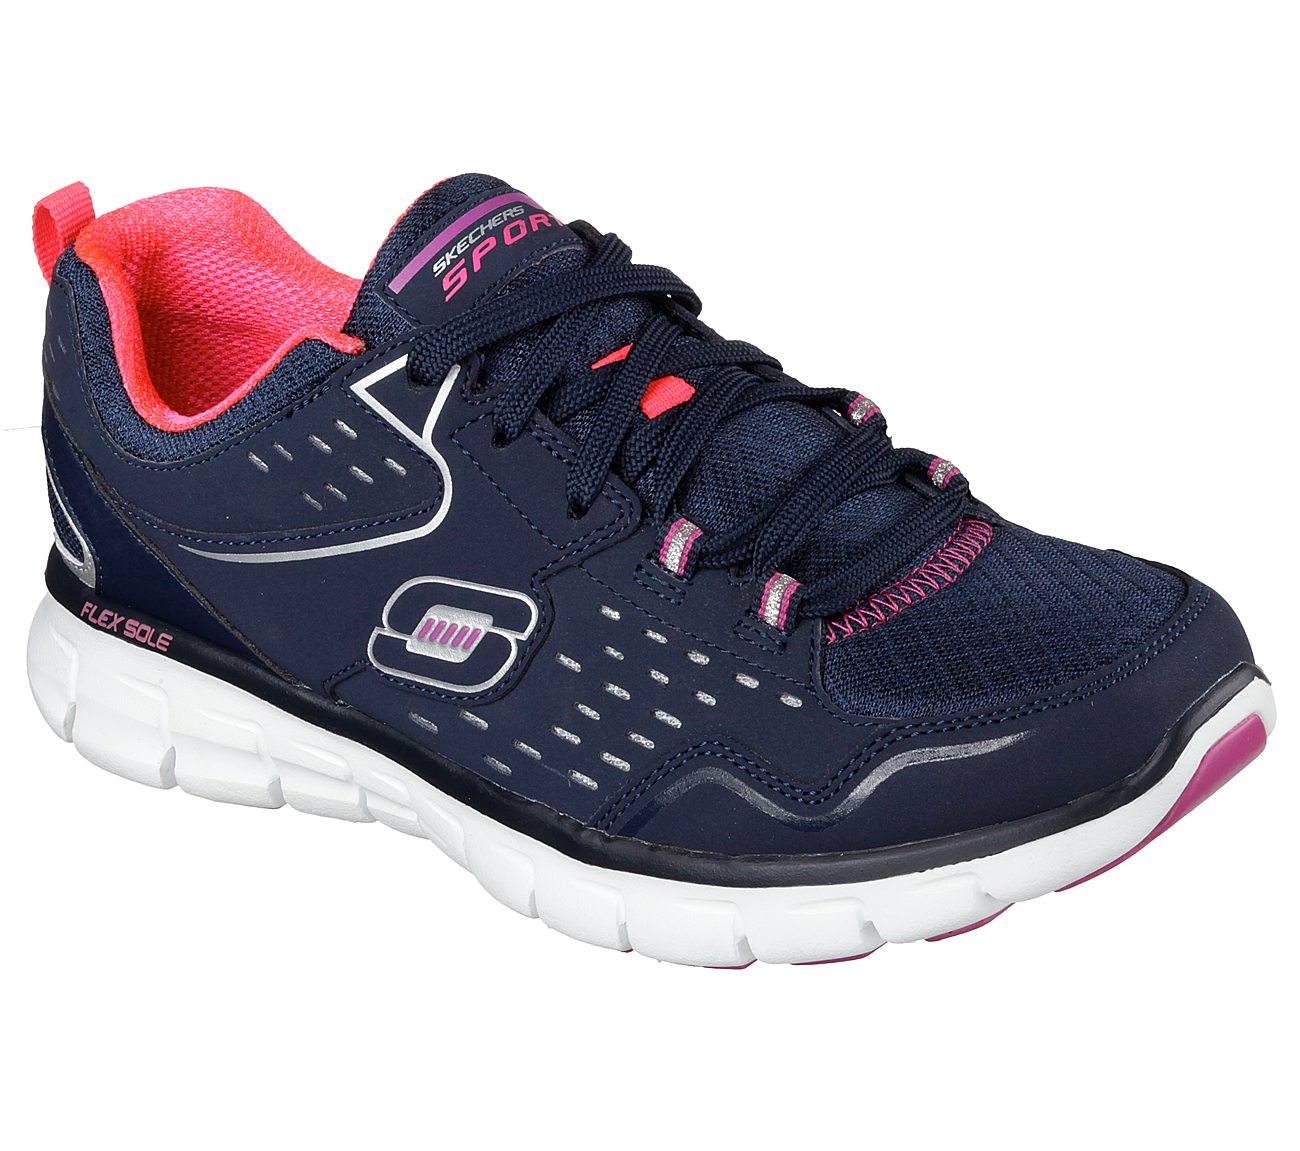 151e2d565c5f Buy SKECHERS Synergy - Front Row SKECHERS Sport Shoes only £59.00